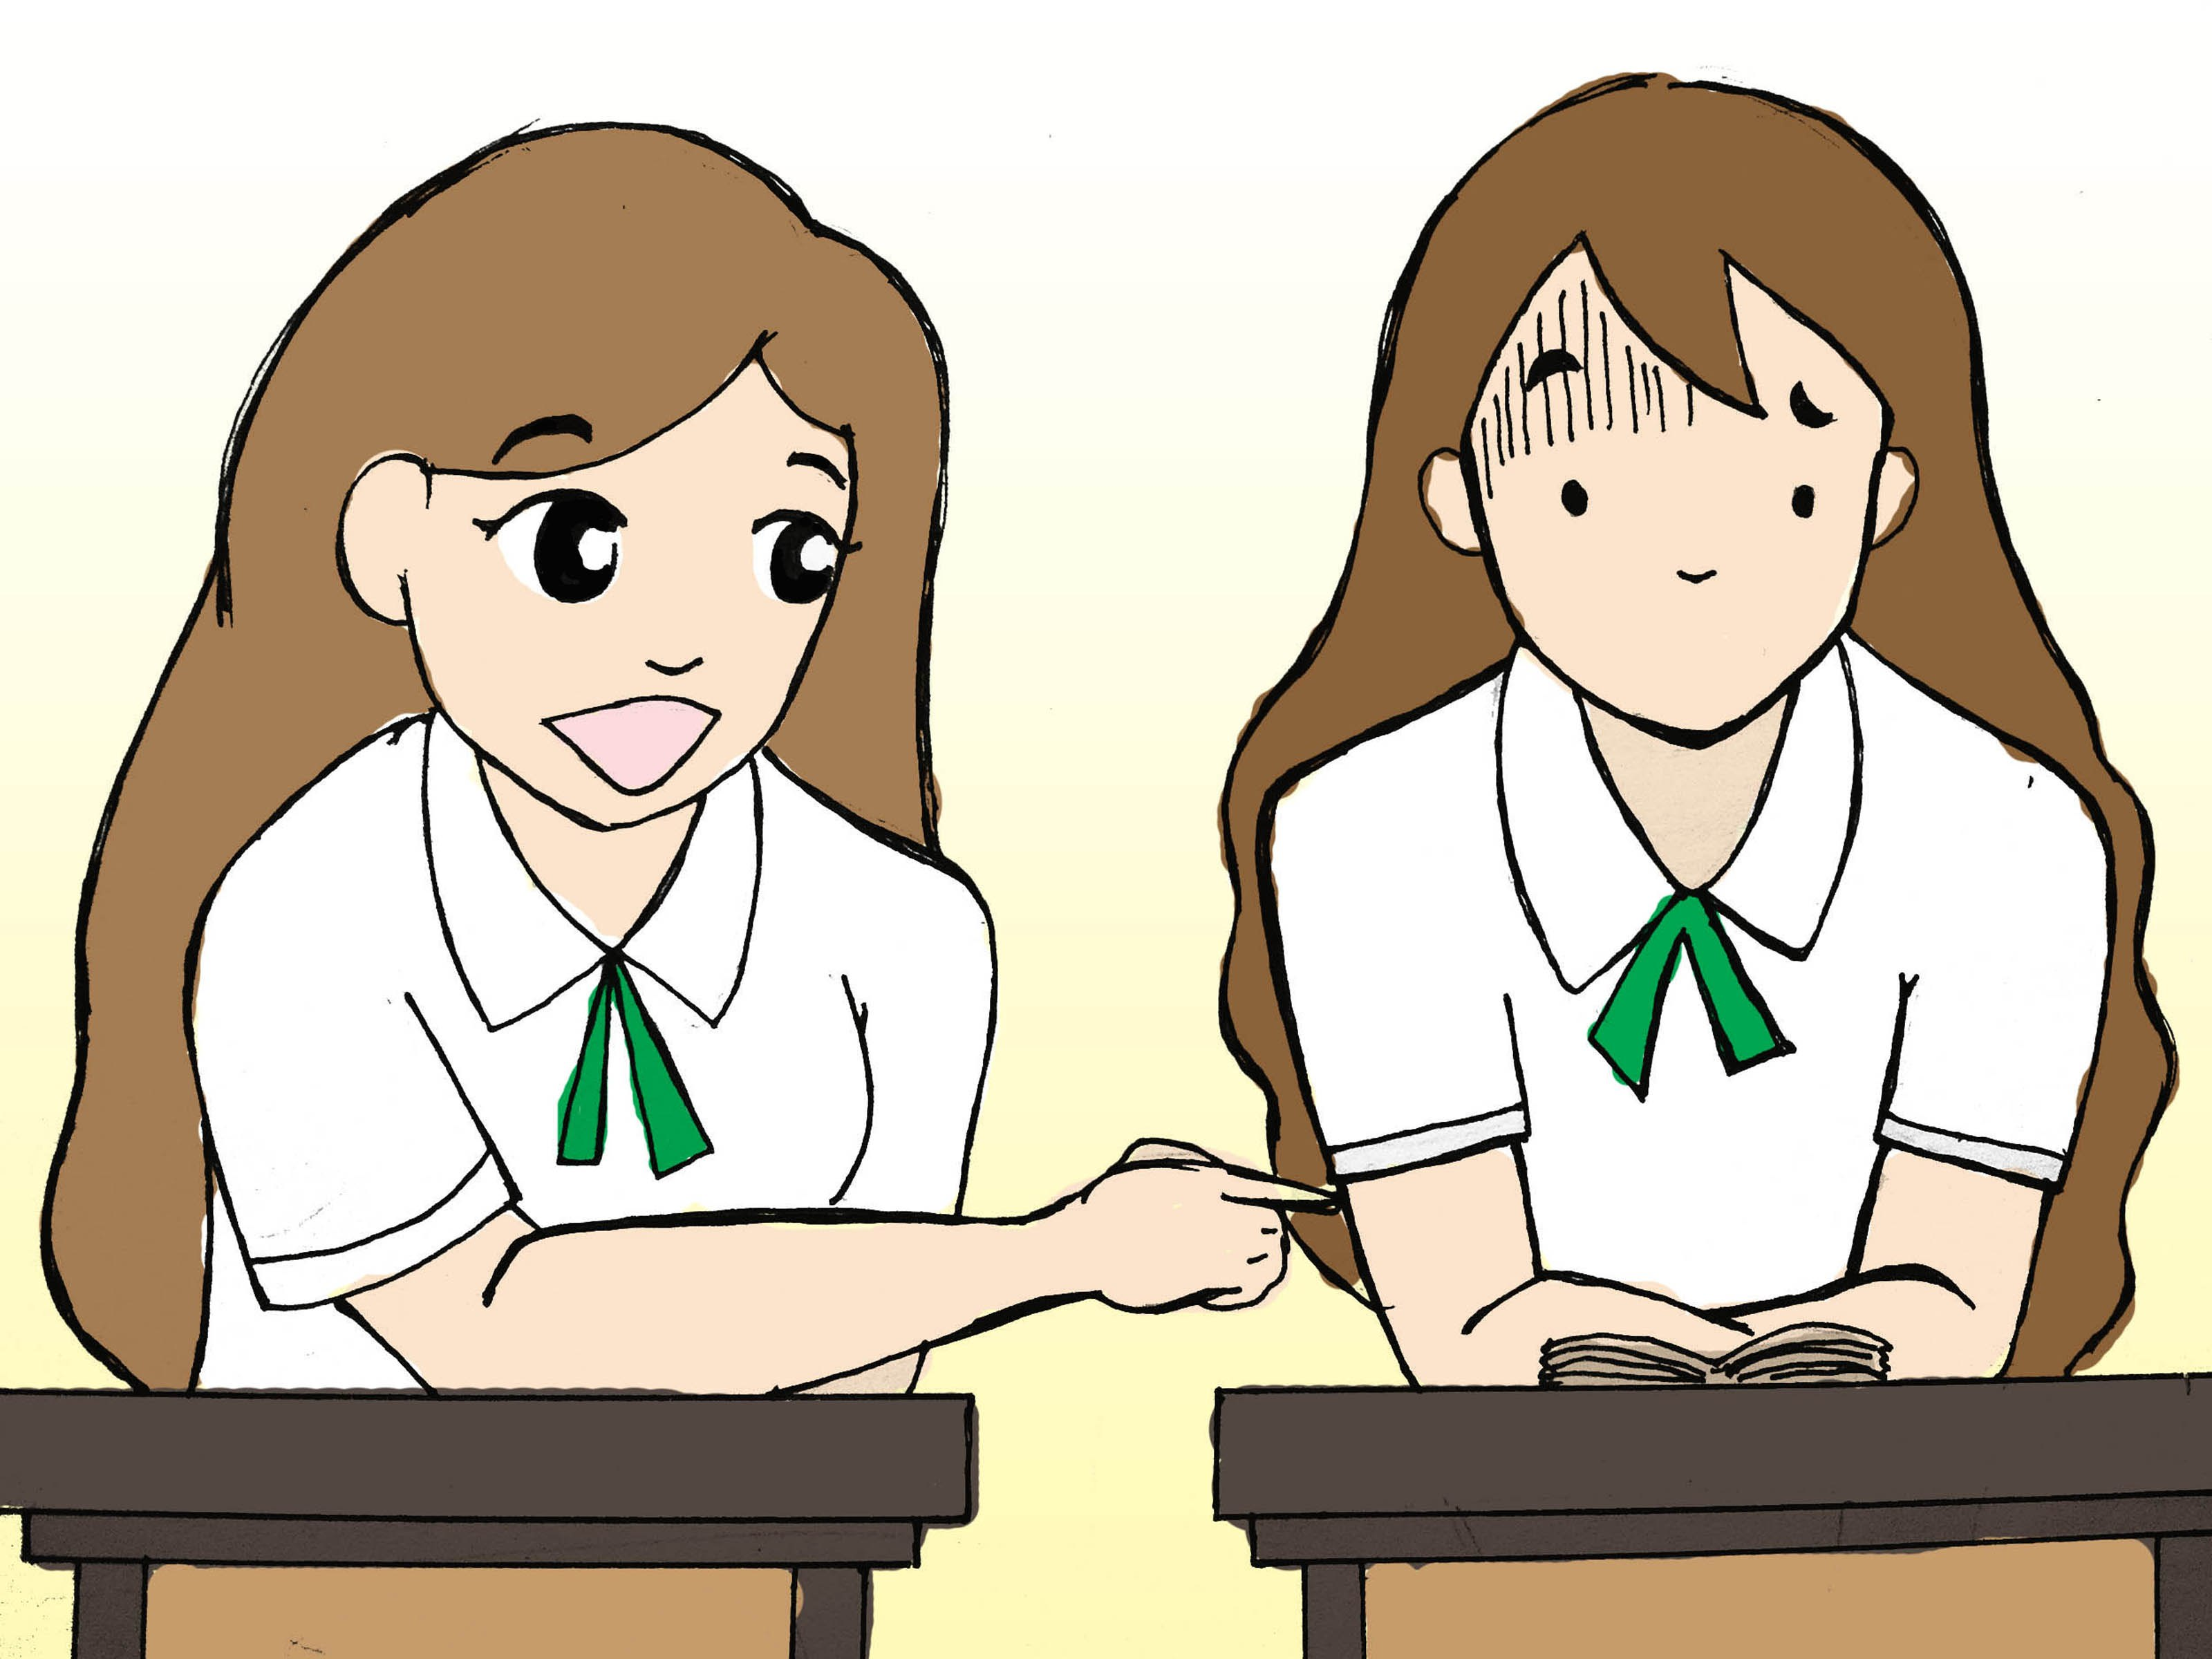 Classmate Cliparts, Stock Vector And Royalty Free Classmate Illustrations